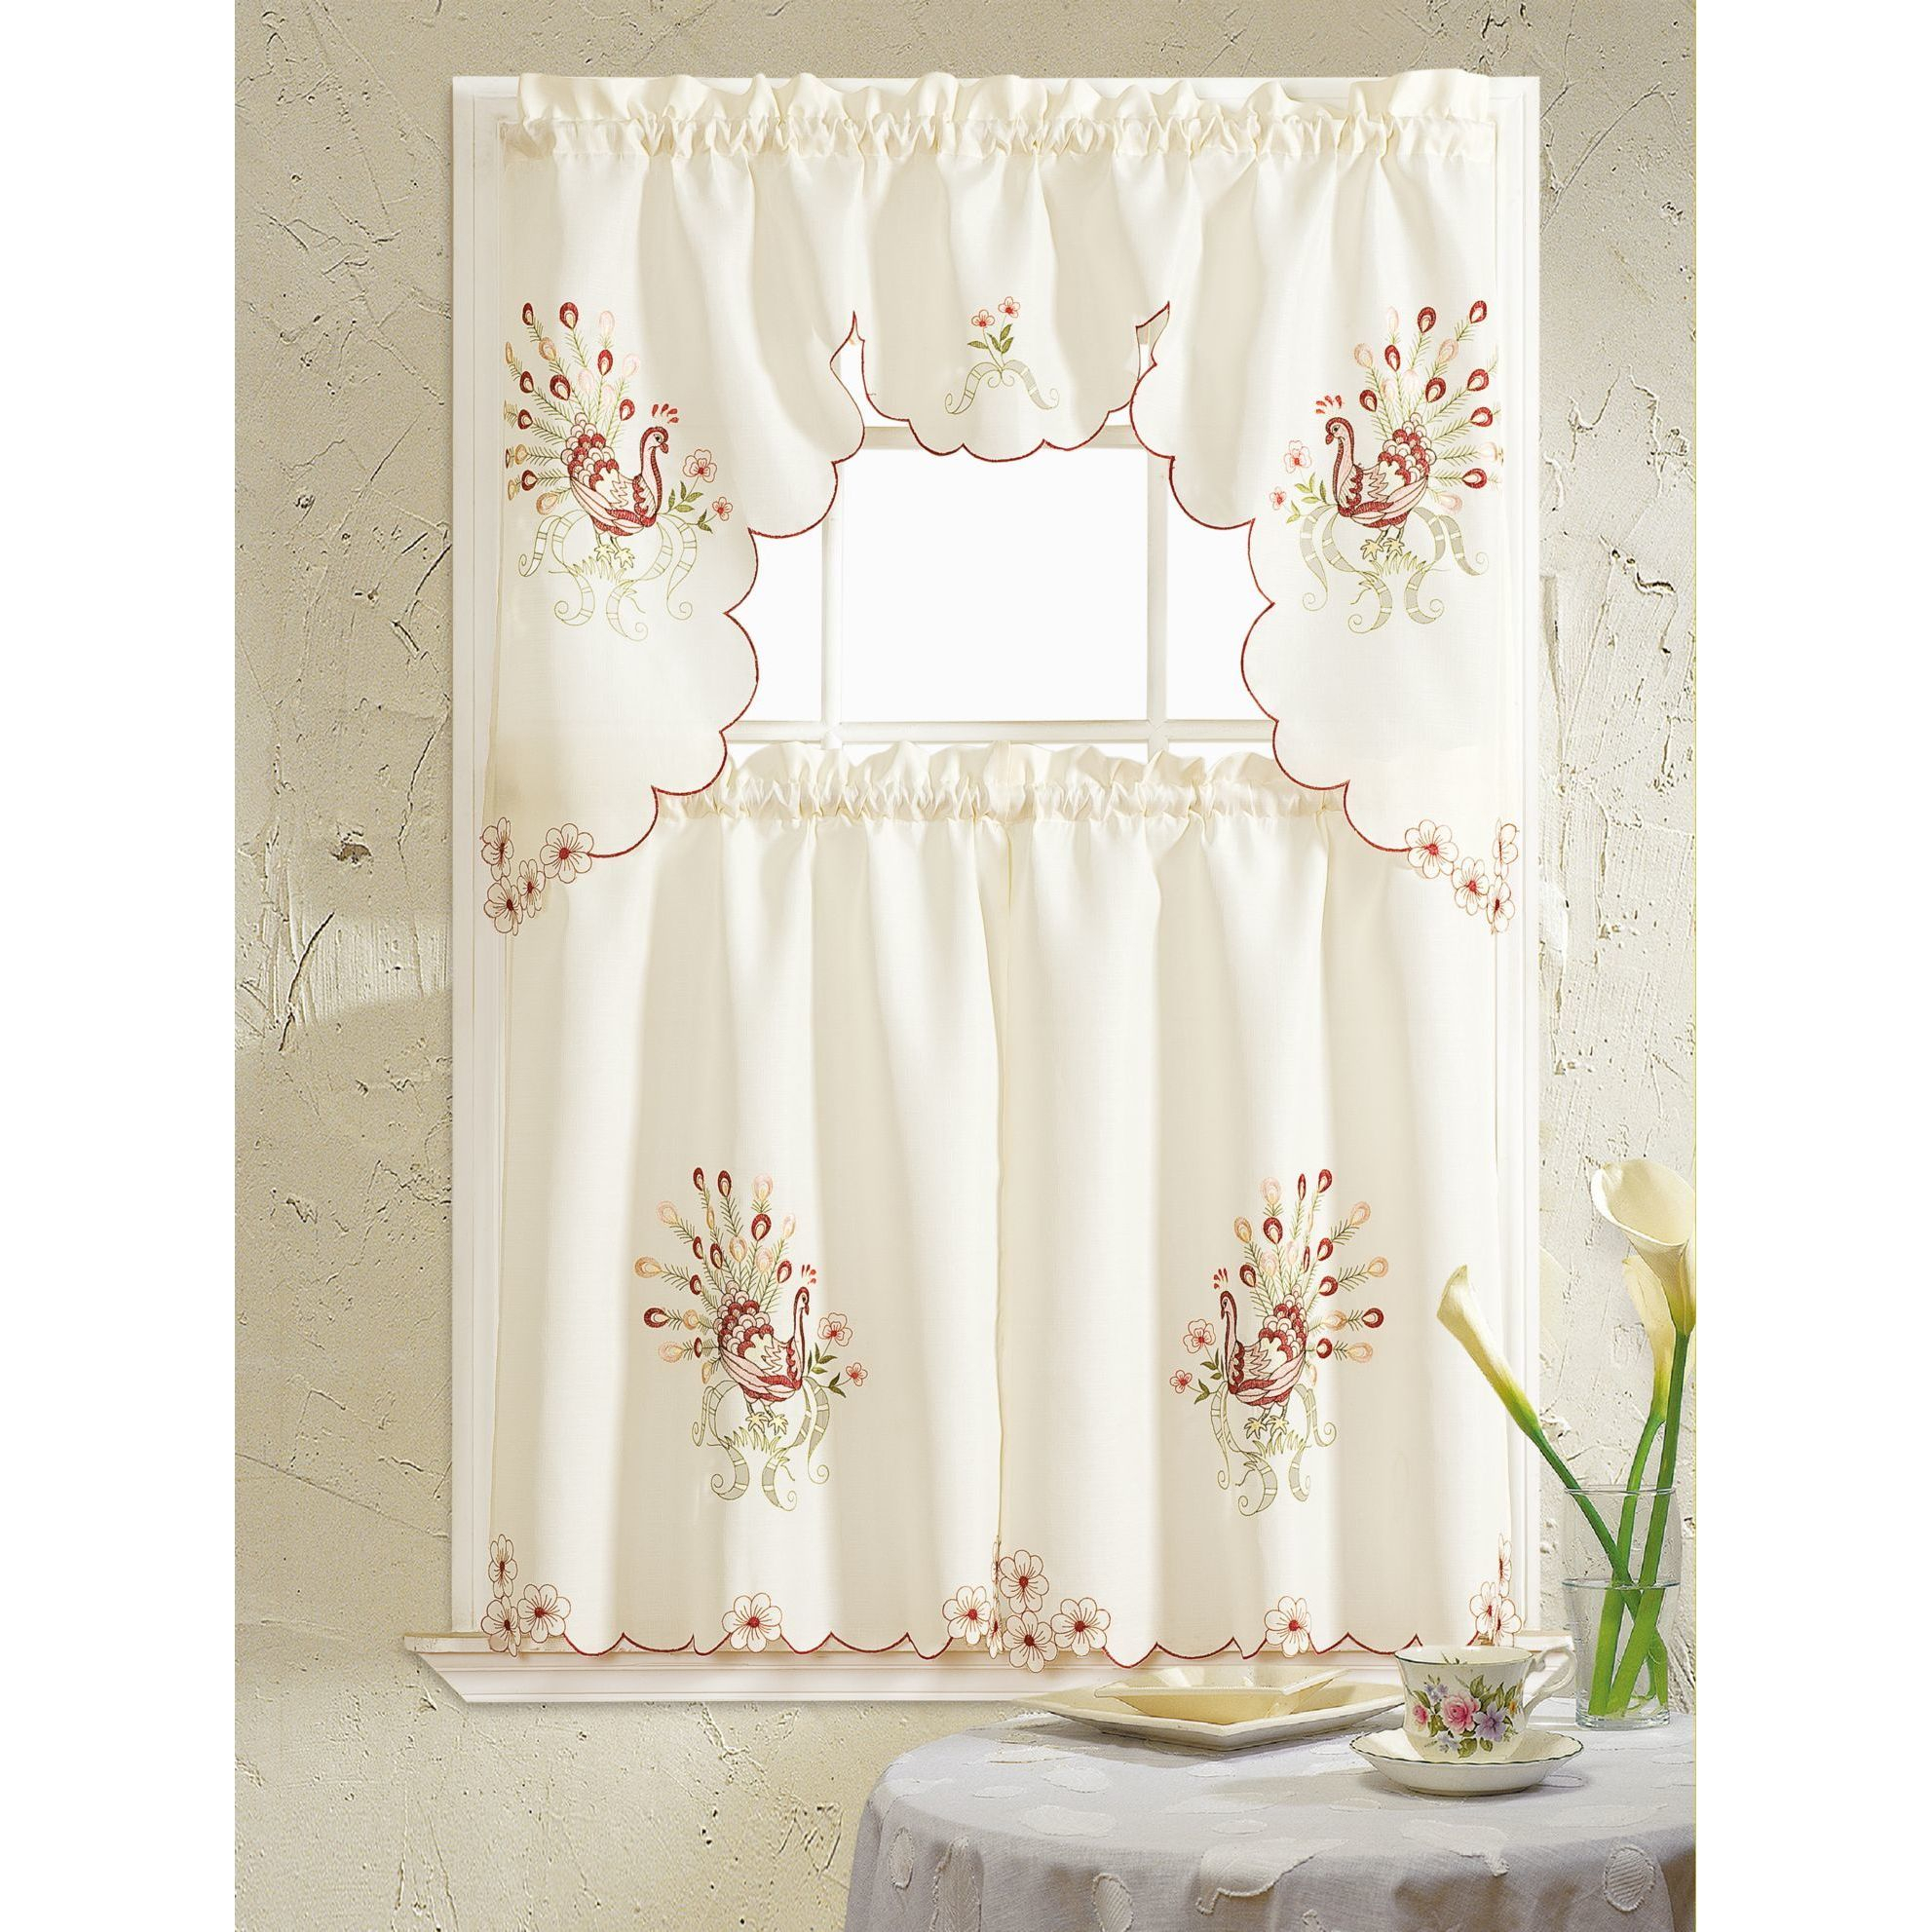 Rt Designers Collection Peacock Embroidered Tiers And Valance Kitchen Curtain Set For Spring Daisy Tiered Curtain 3 Piece Sets (View 16 of 20)